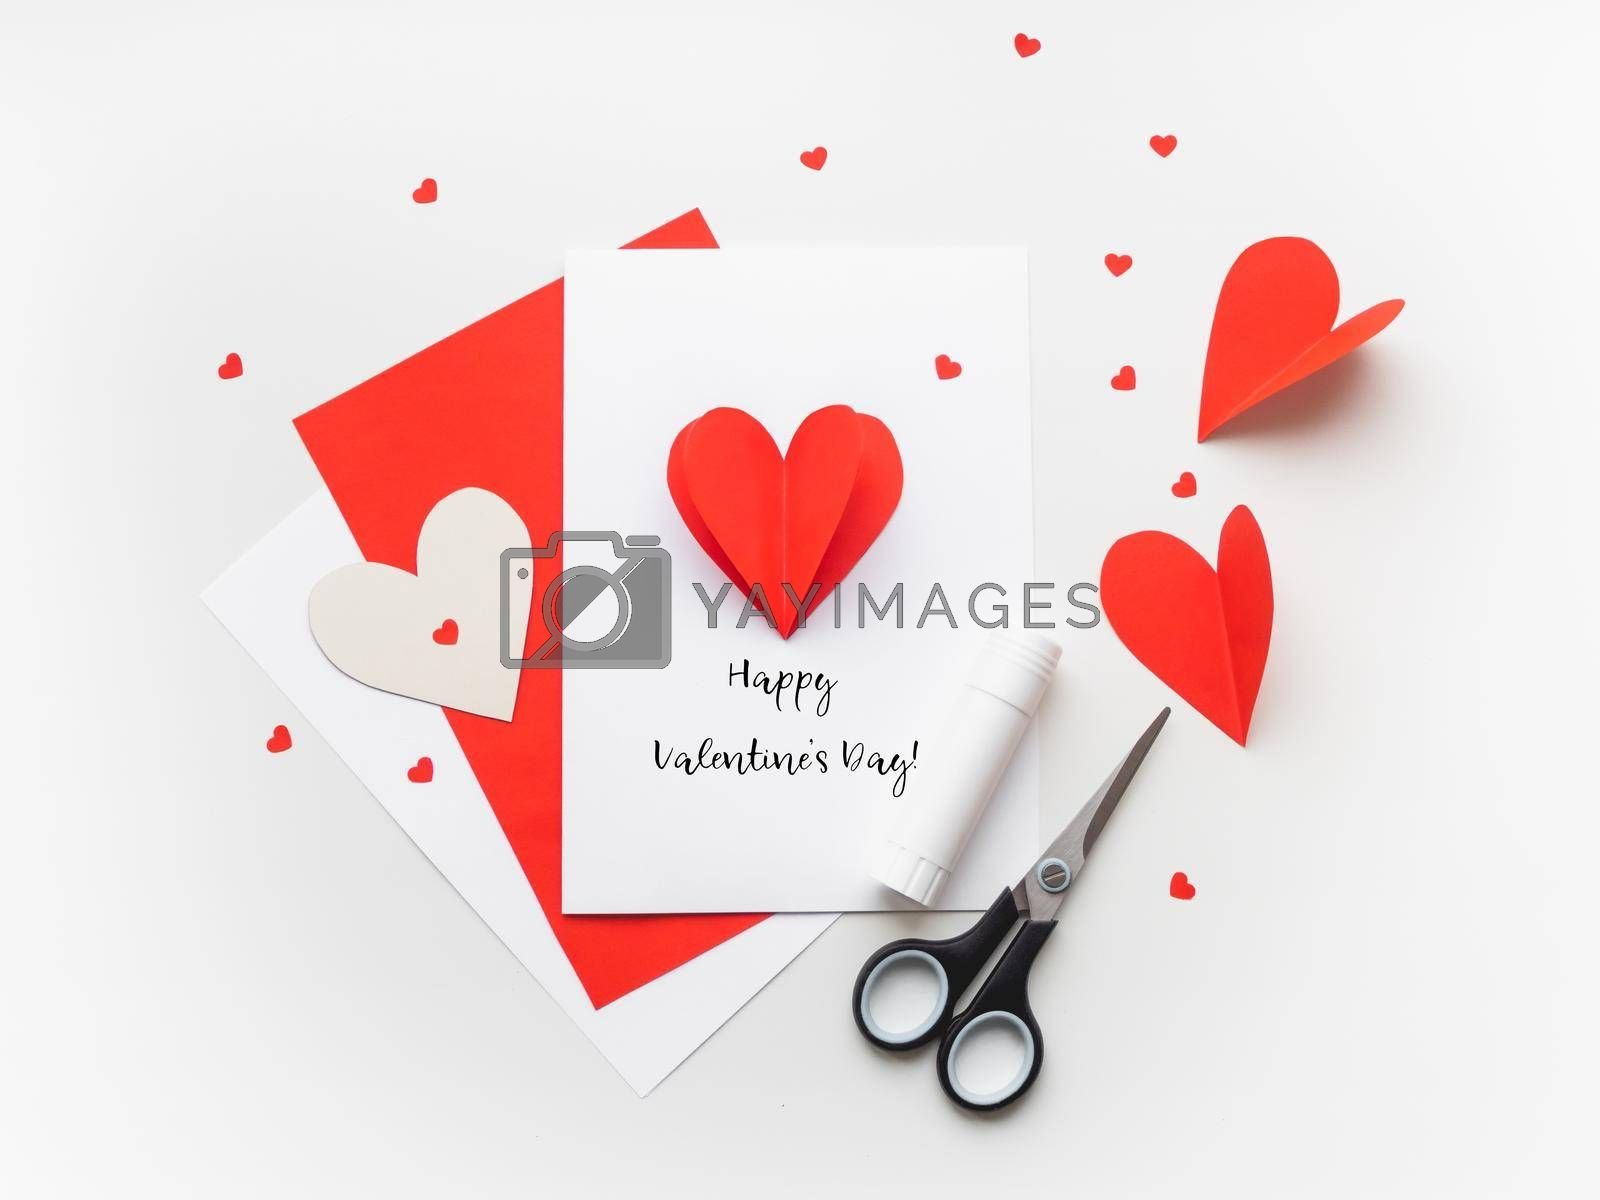 Valentine's Day greeting card. DIY holiday card with red paper volumetric heart, symbol of love and romance. Handmade card made with scissors, glue and colored paper. by aksenovko